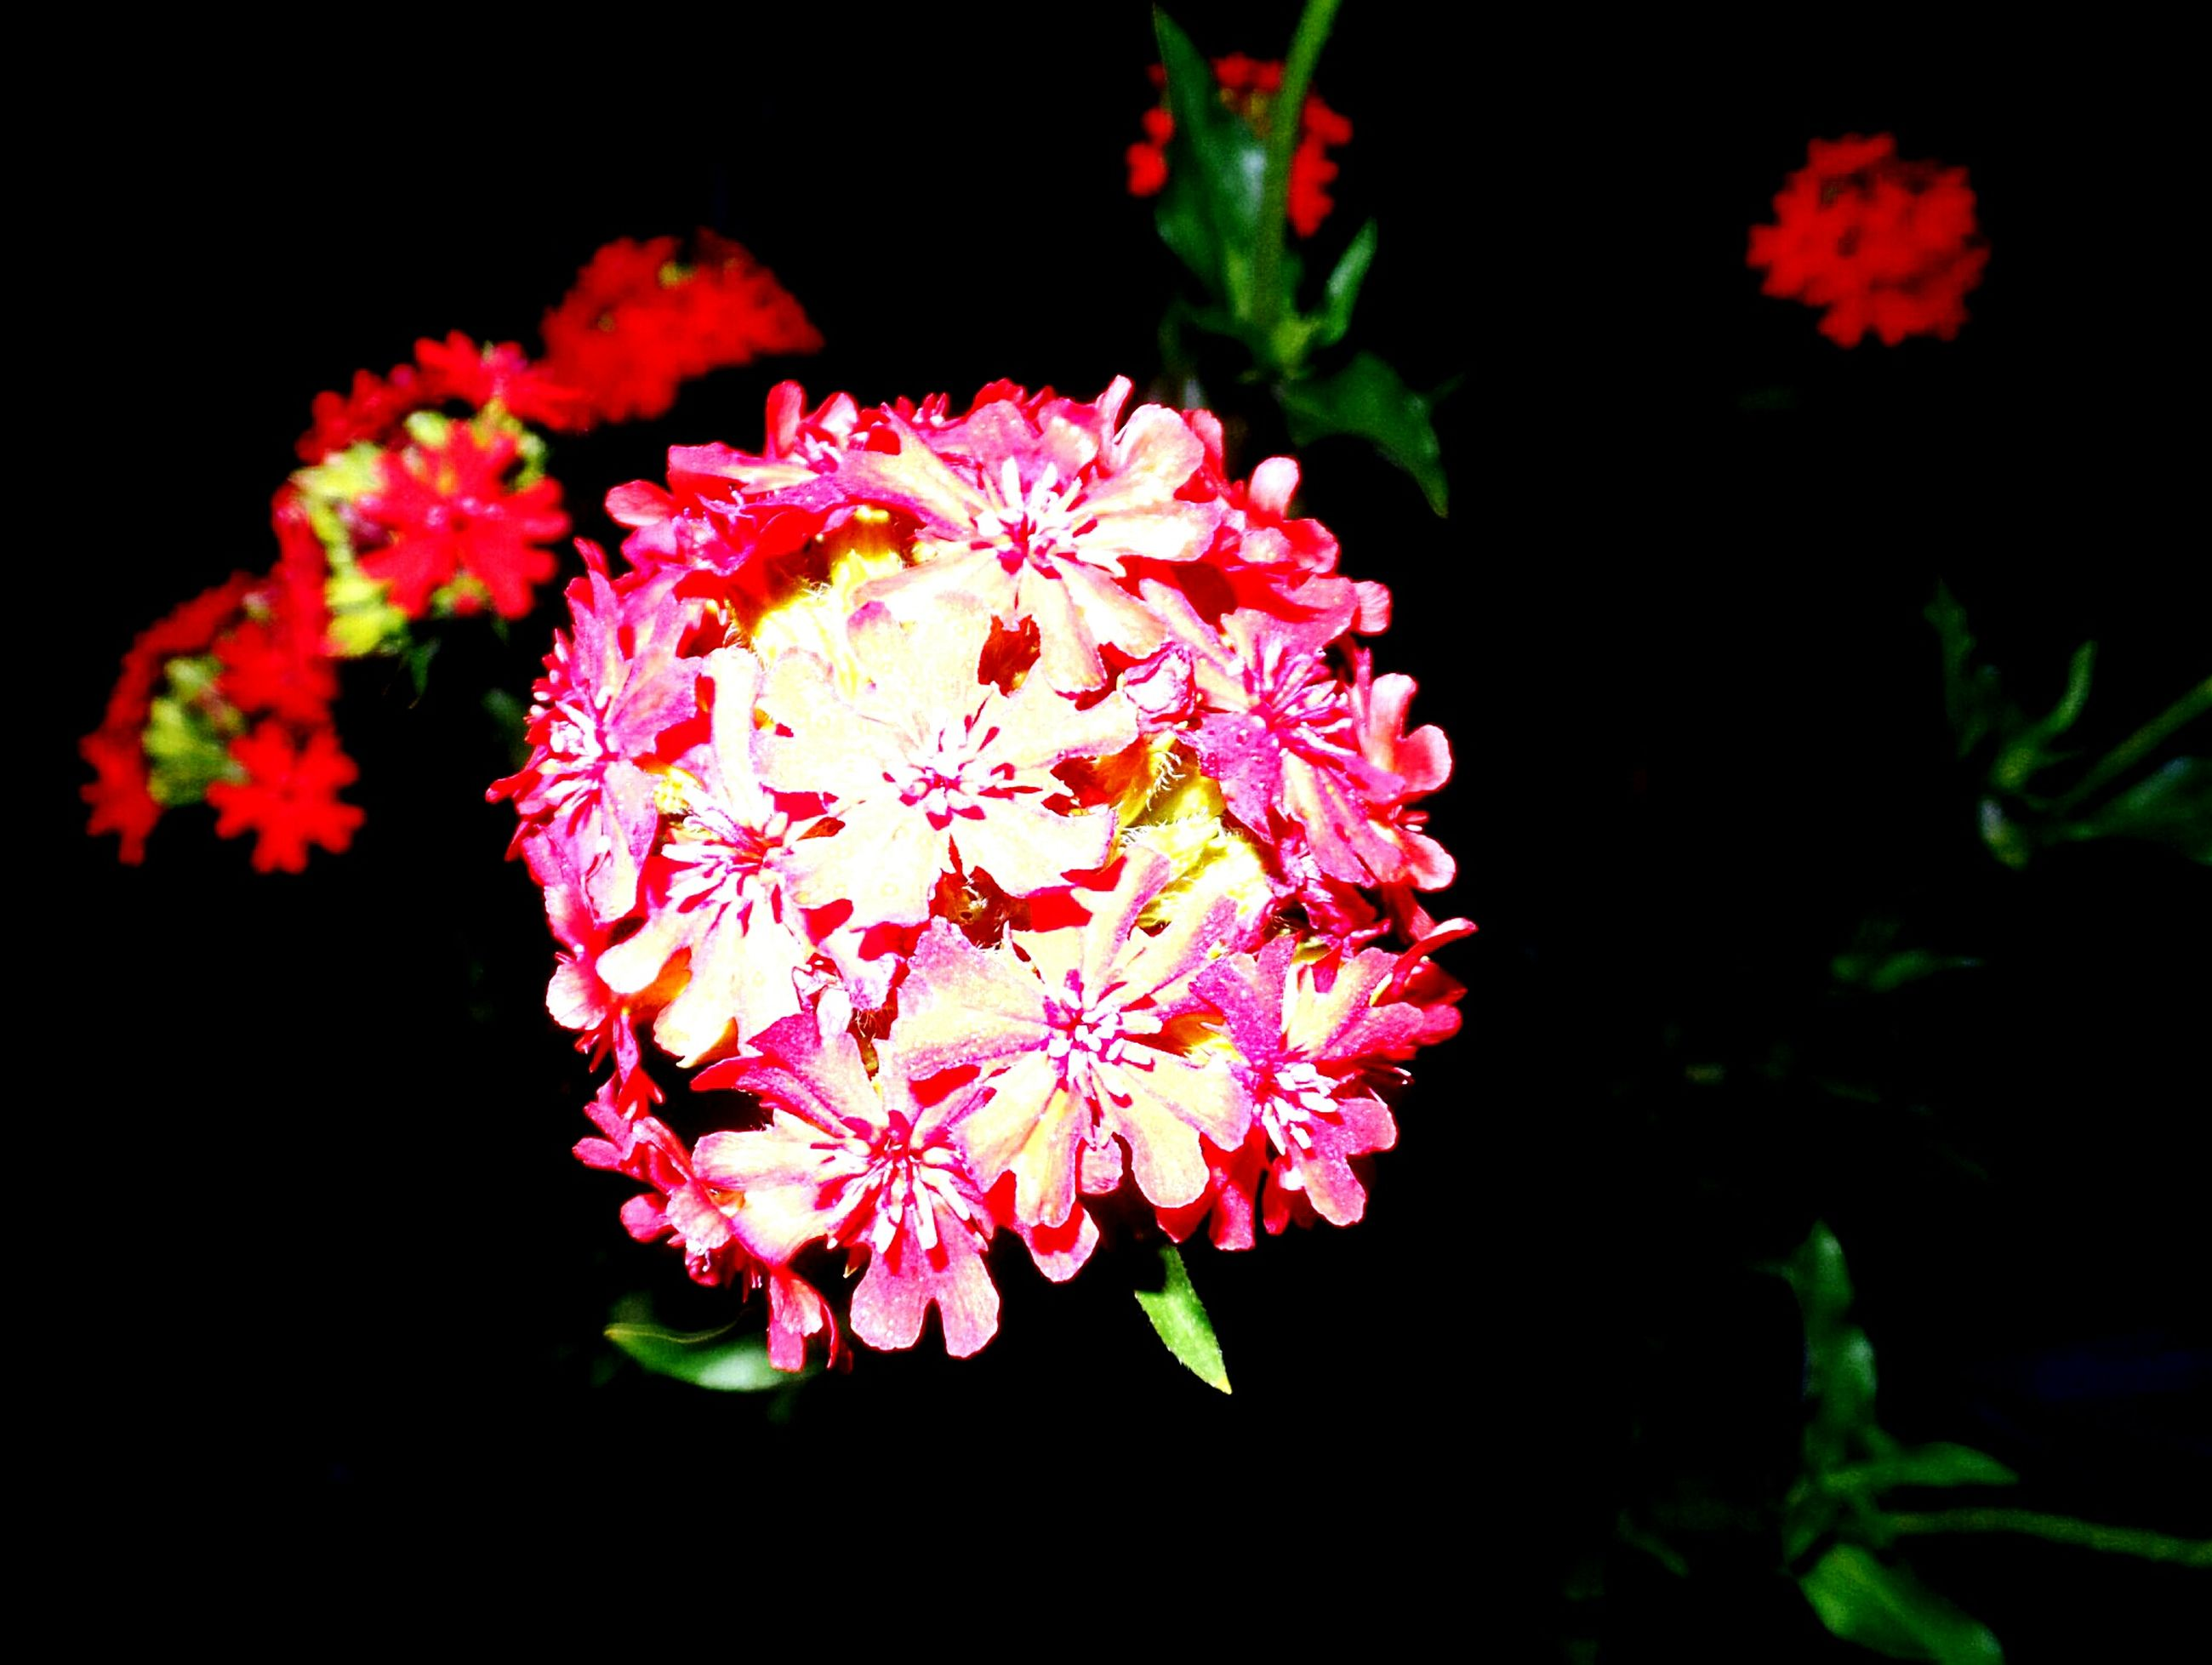 flower, beauty in nature, fragility, night, nature, petal, black background, freshness, growth, plant, flower head, no people, outdoors, close-up, blooming, lantana camara